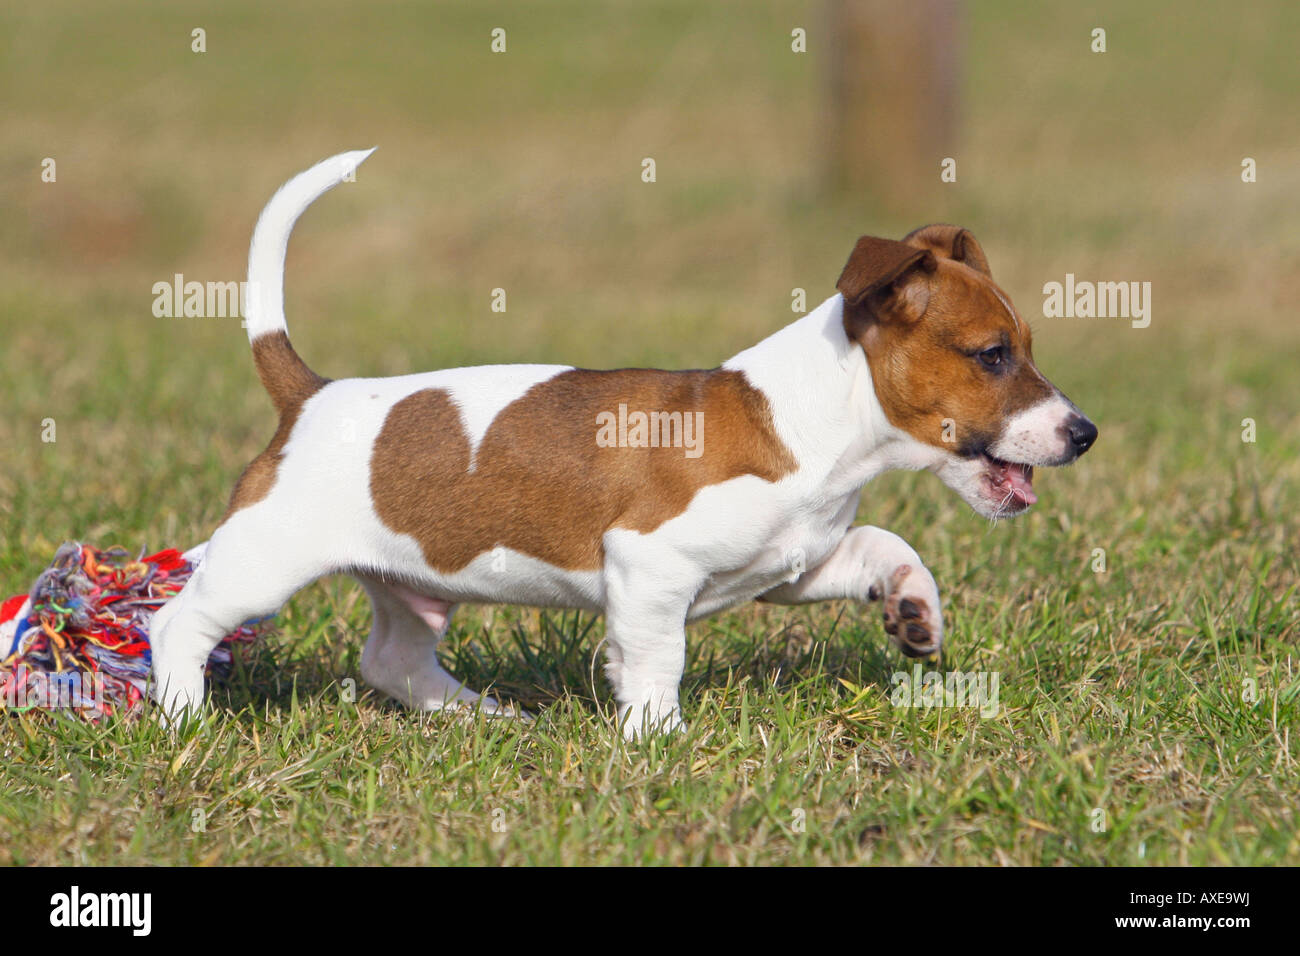 Jack Russell Terrier puppy with toy Stock Photo: 16818557